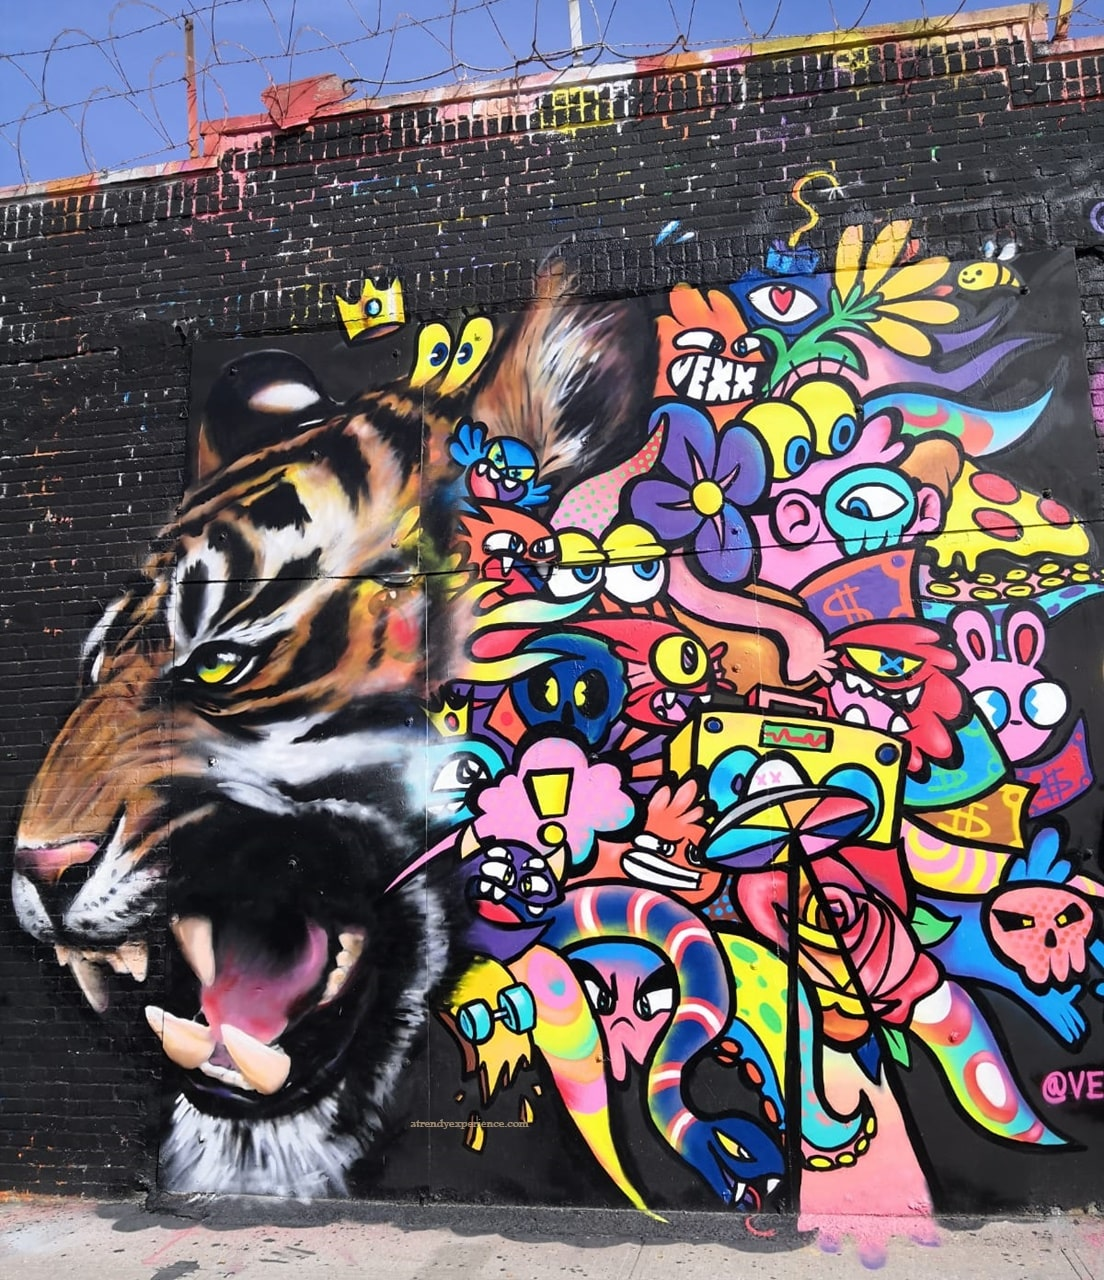 graffito tigre vexx brooklyn new york